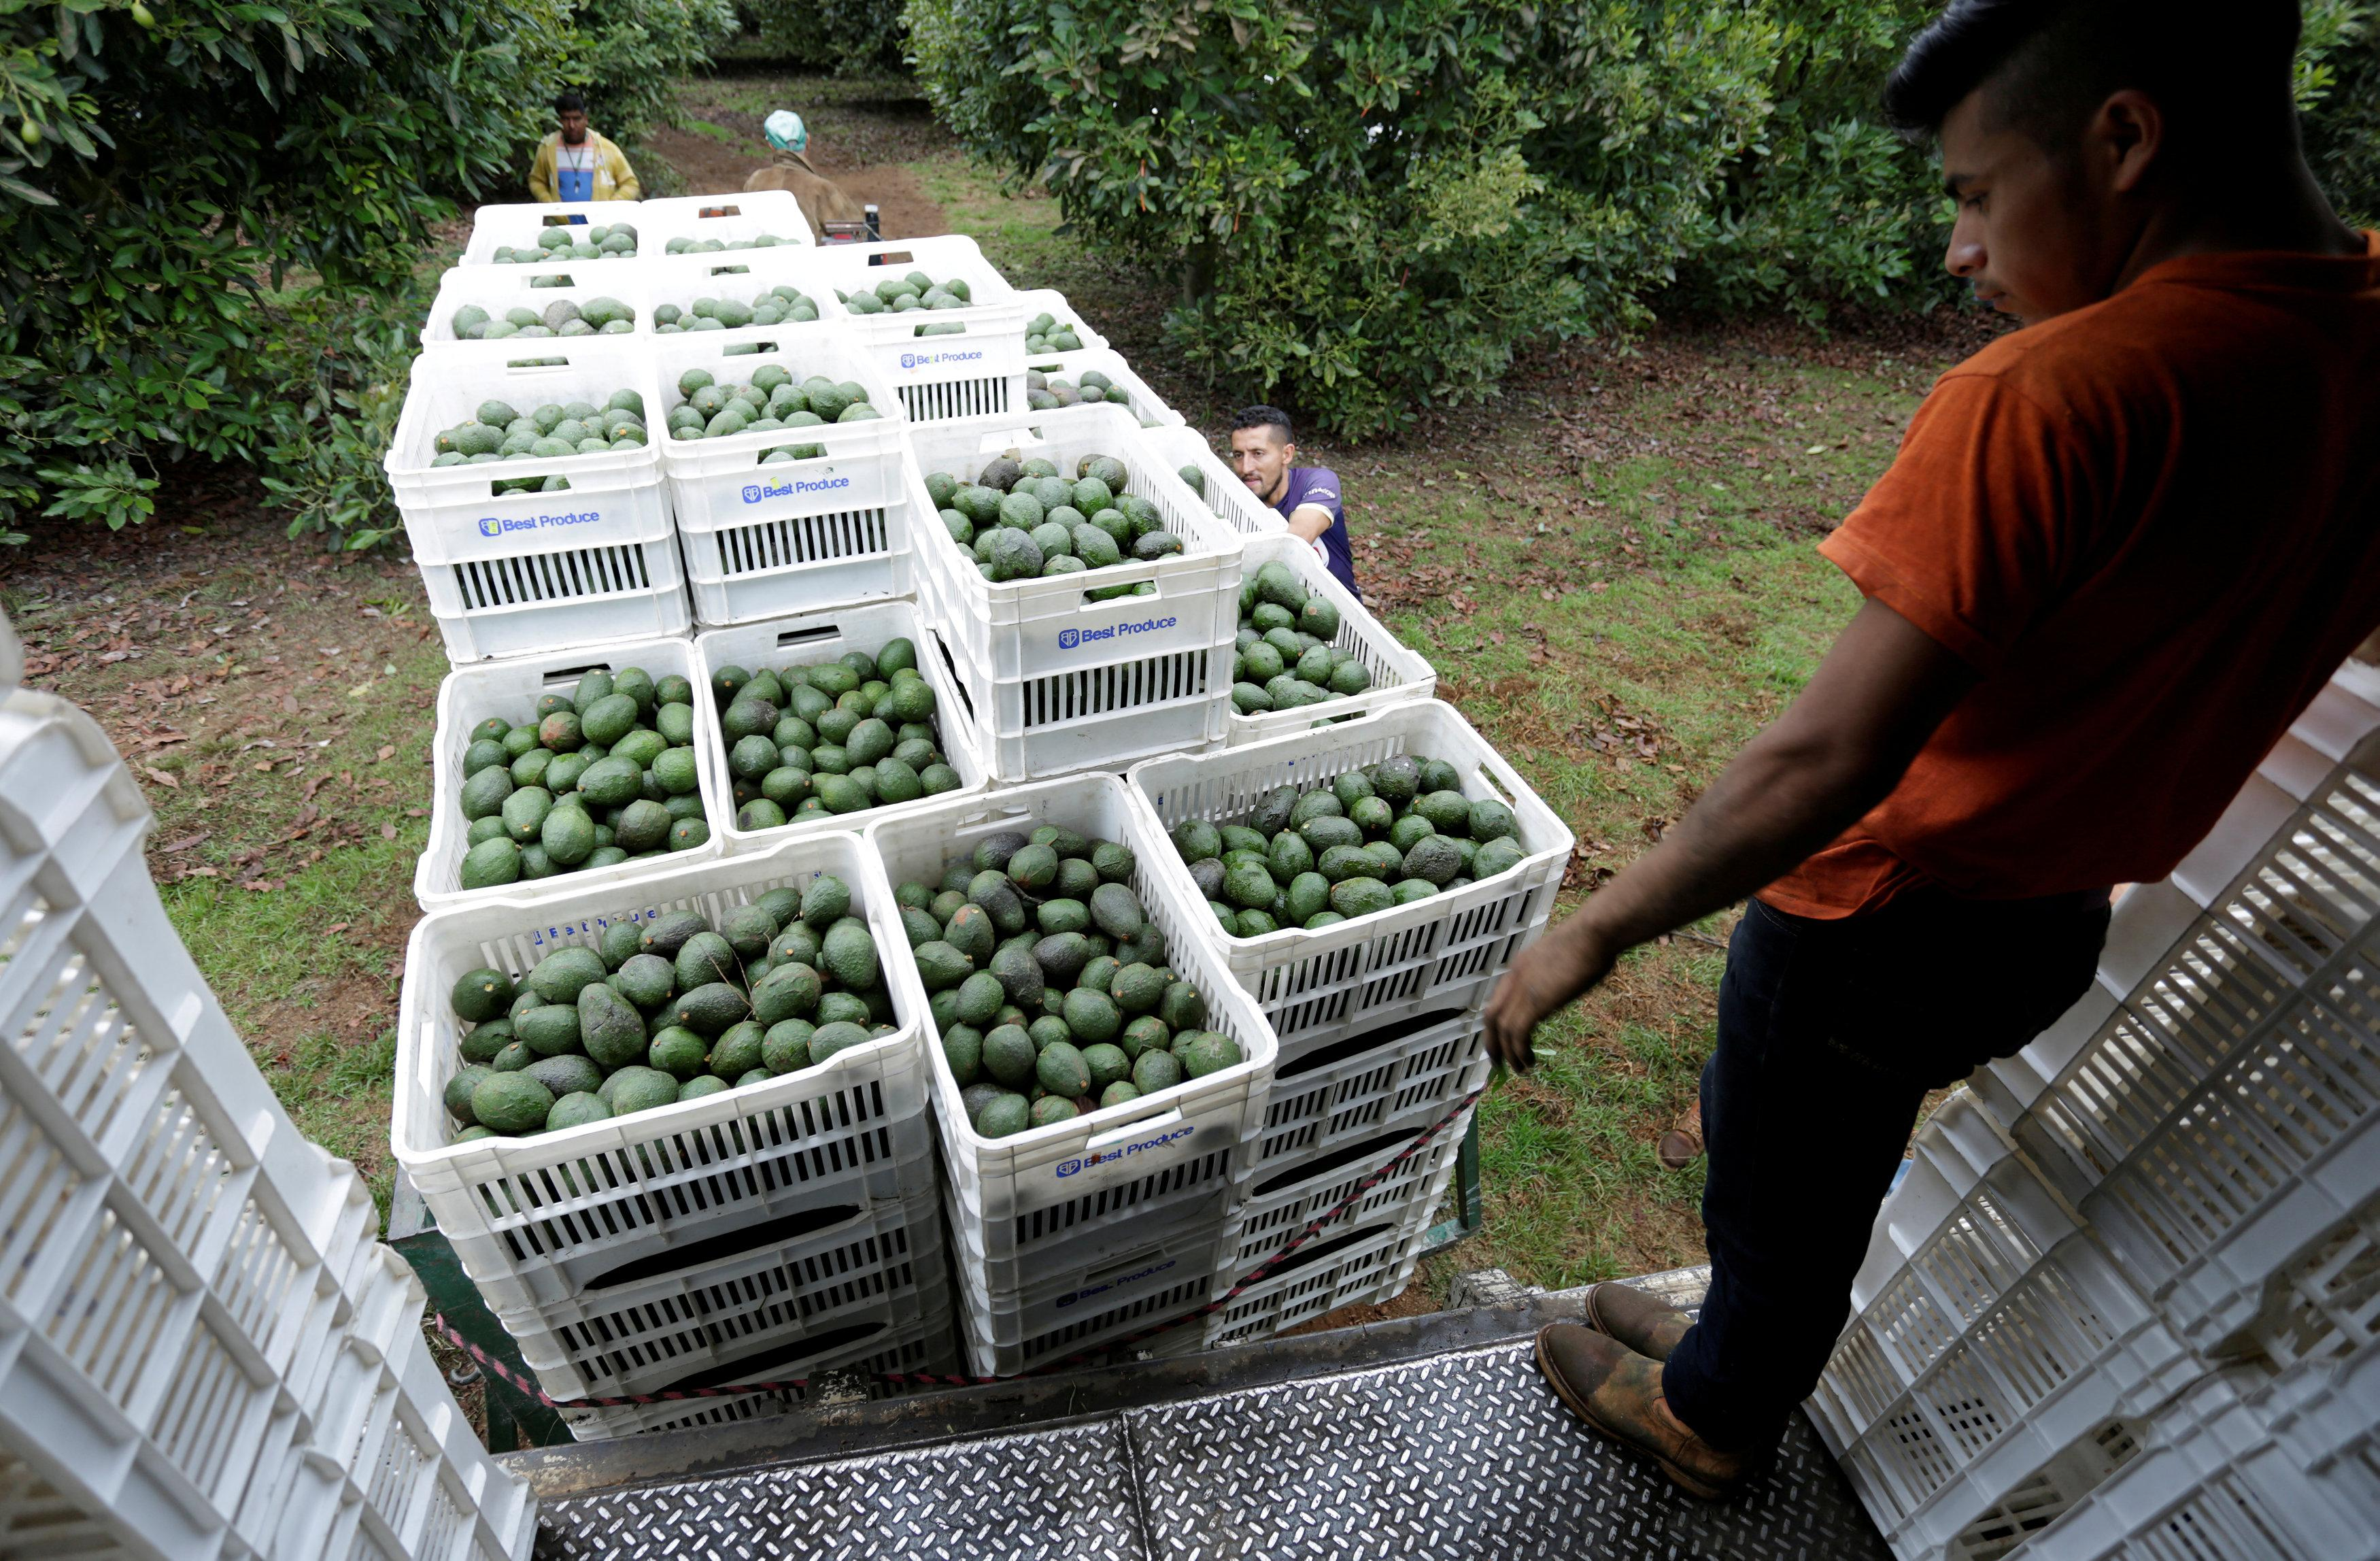 Around 120,000 tonnes of avocados were due to be sent north of the border